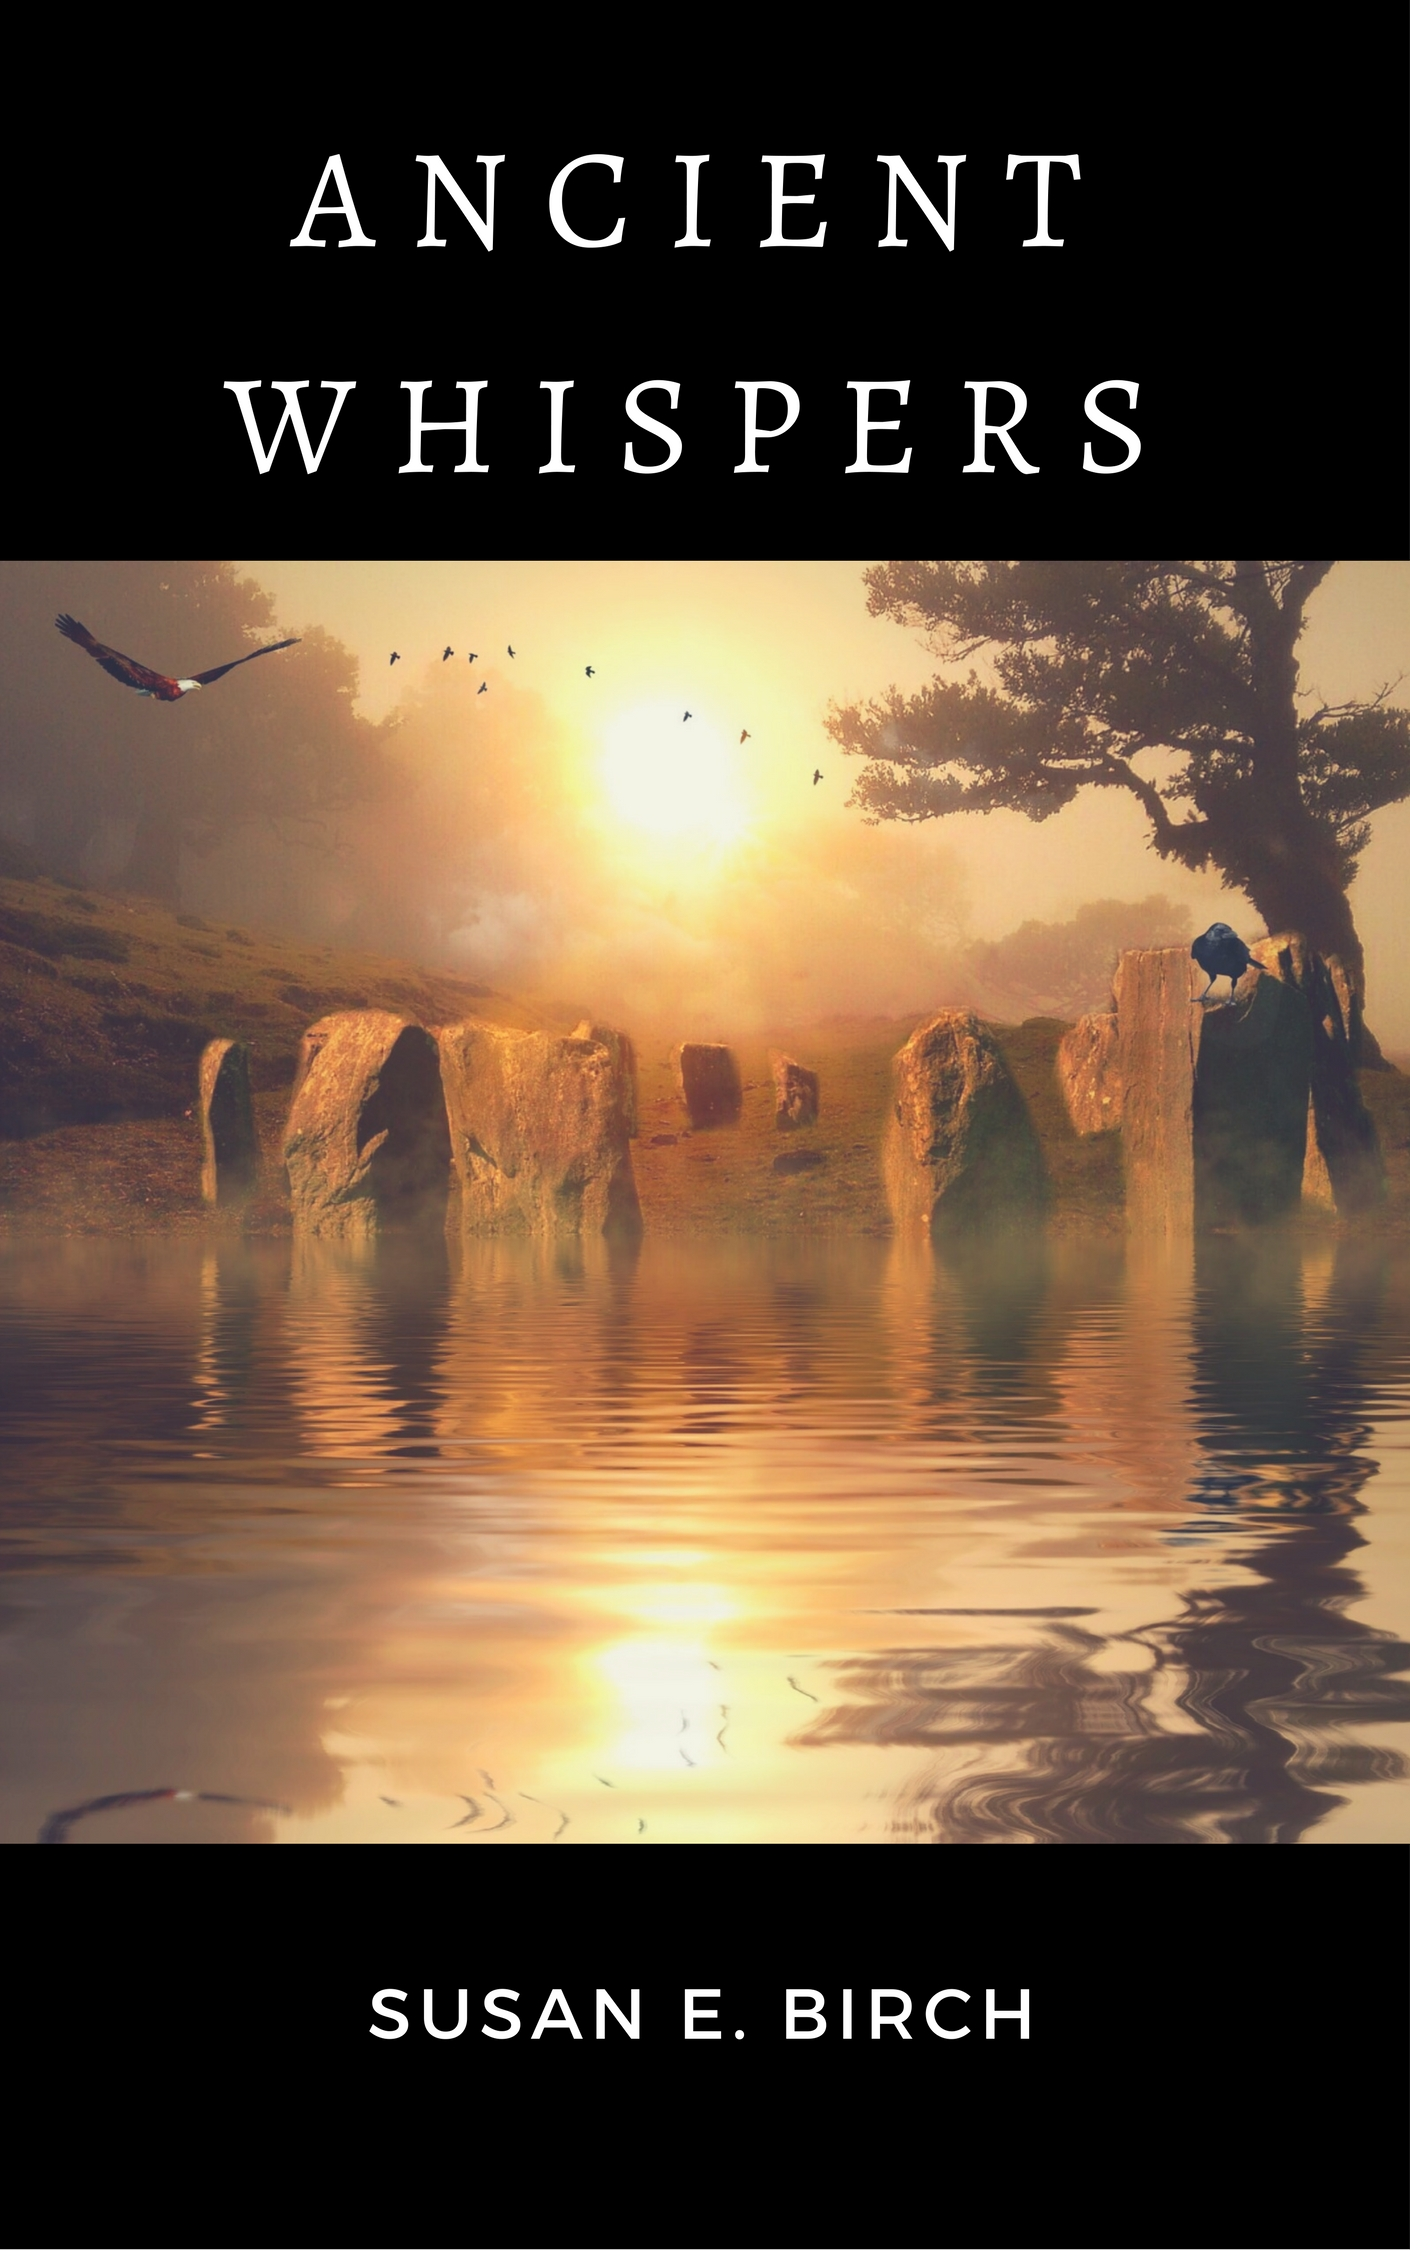 Ancient Whispers